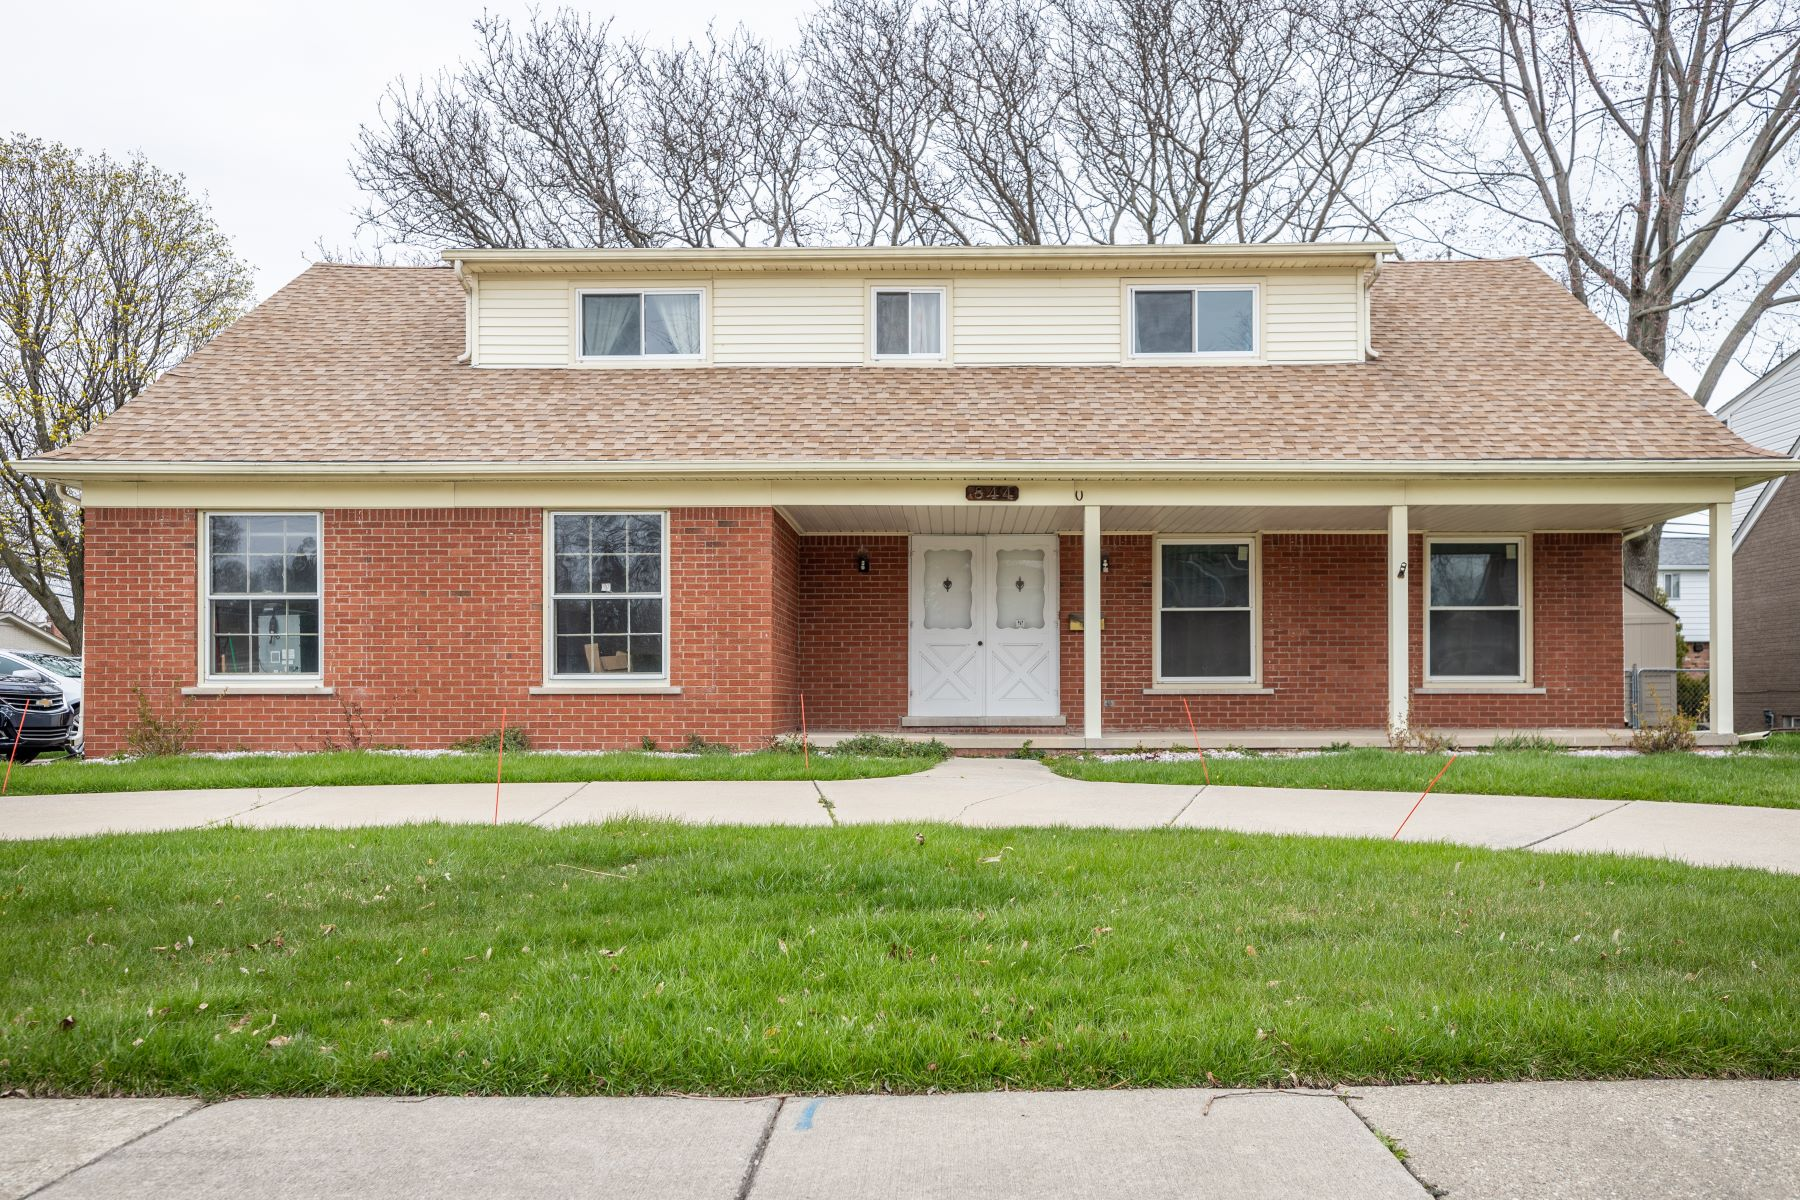 Single Family Homes for Sale at Grosse Pointe Woods 844 Blairmoor CRT Grosse Pointe Woods, Michigan 48236 United States